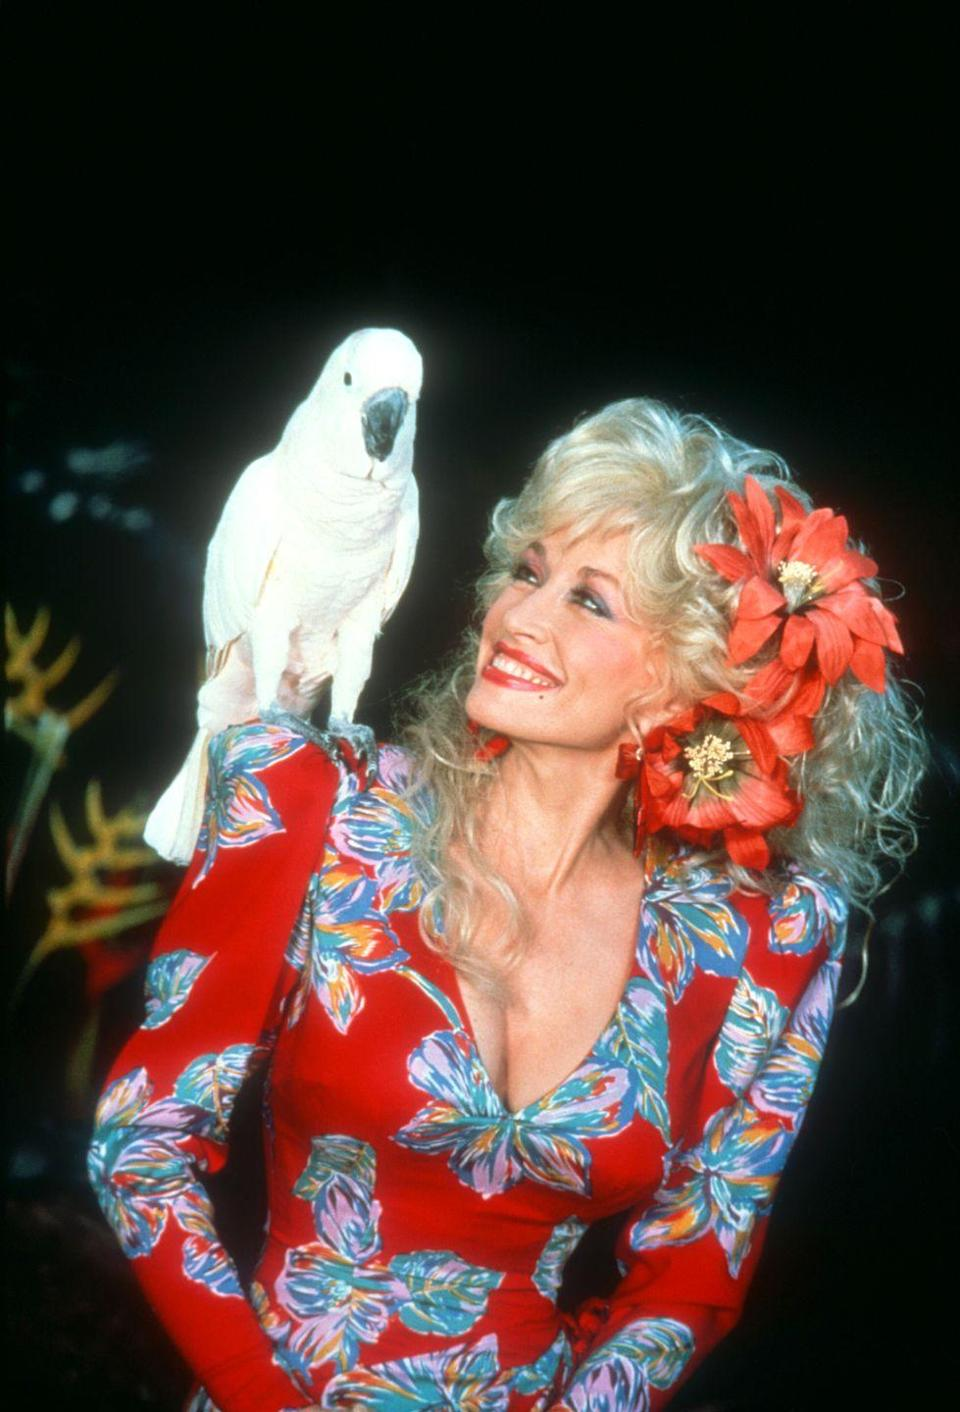 "<p>Full of surprises, Dolly was joined by a parrot on her show <em>Dolly! </em>Though it really shouldn't be all that shocking considering the singer's <a href=""https://www.peta.org/features/loretta-emmylou-dolly/"" rel=""nofollow noopener"" target=""_blank"" data-ylk=""slk:love of animals"" class=""link rapid-noclick-resp"">love of animals</a>.</p>"